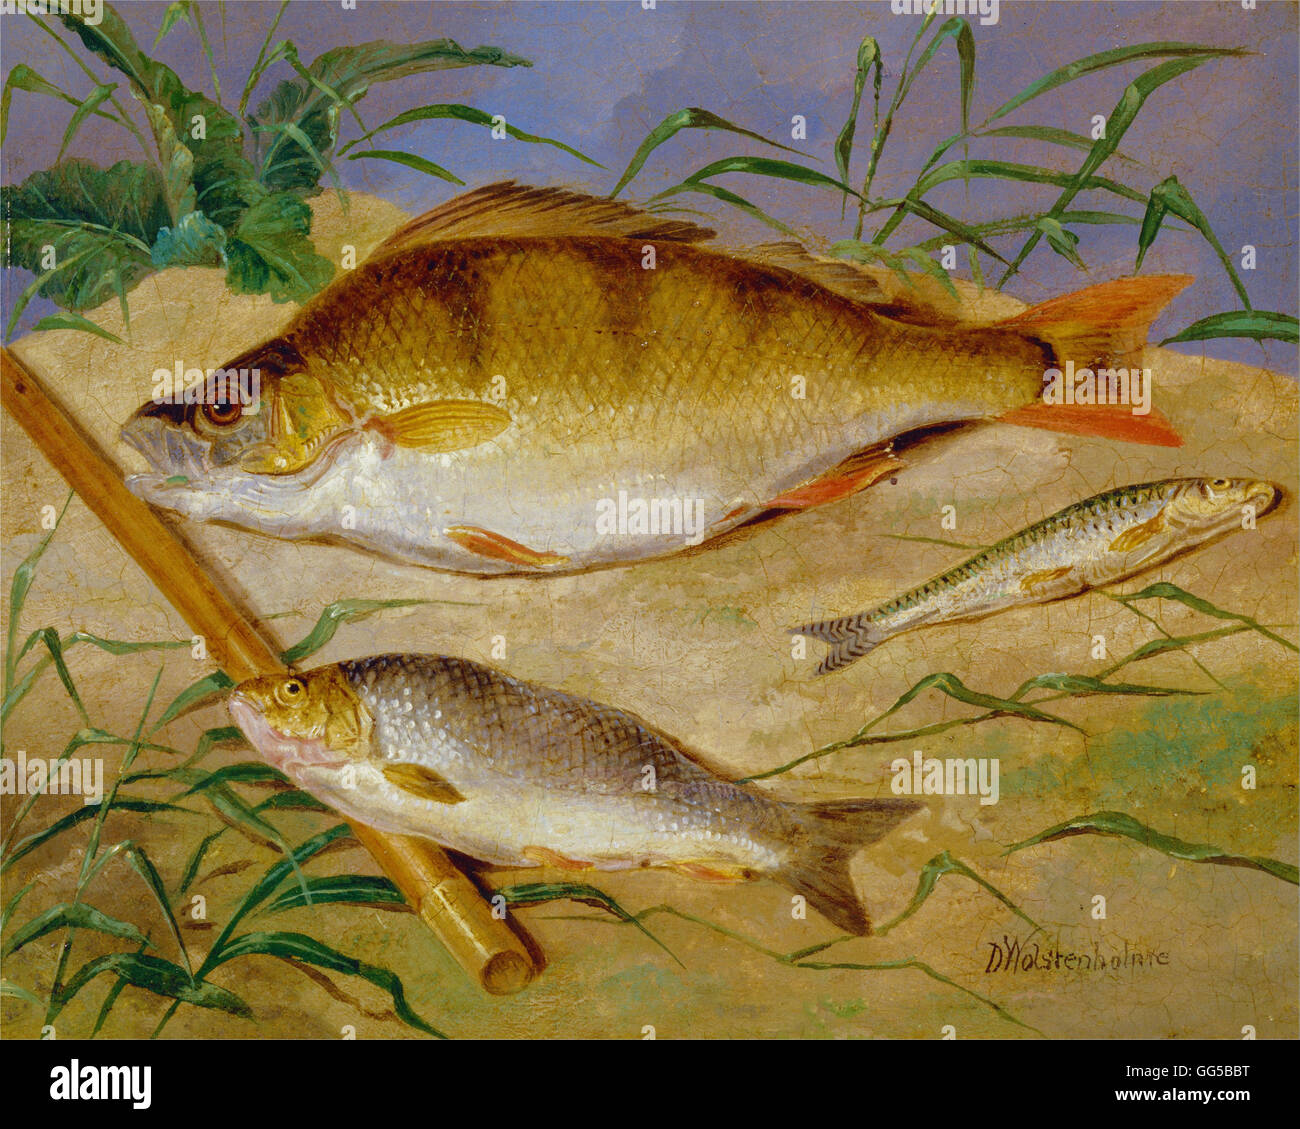 Dean Wolstenholme - An Angler's Catch of Coarse Fish - Stock Image